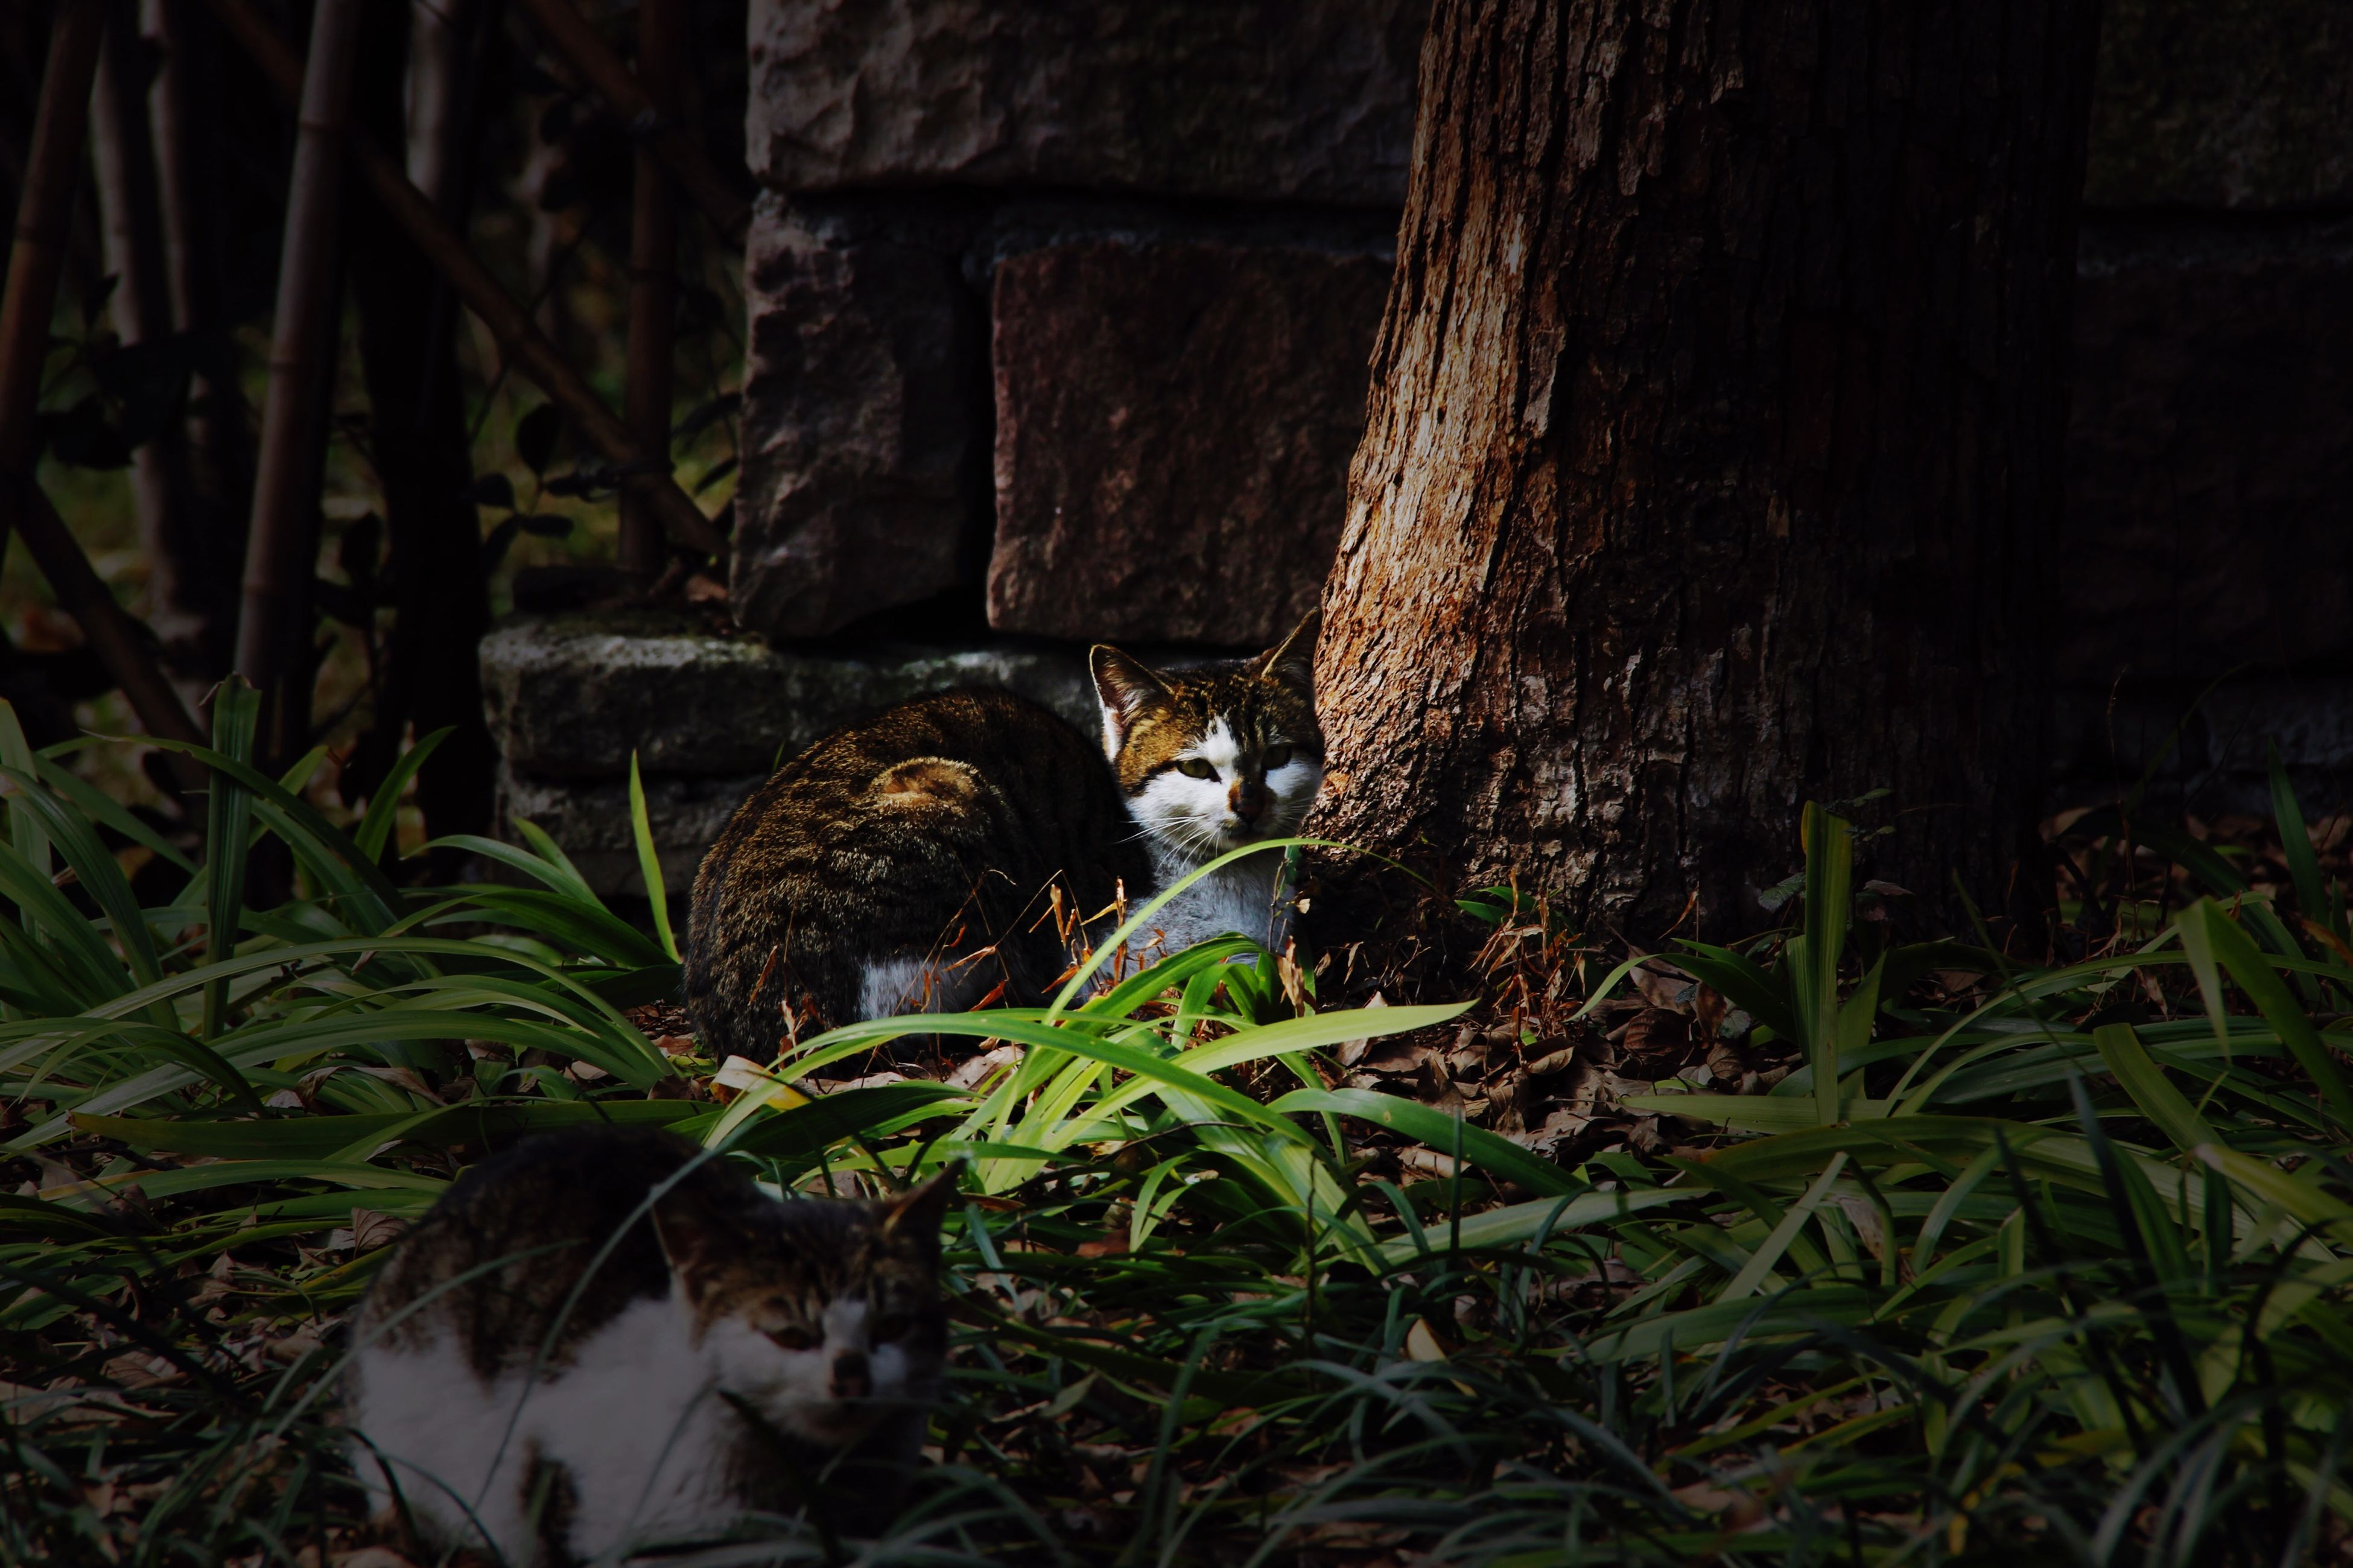 animal themes, one animal, animals in the wild, mammal, wildlife, domestic animals, plant, domestic cat, feline, cat, pets, grass, bird, sitting, nature, outdoors, two animals, relaxation, zoo, no people